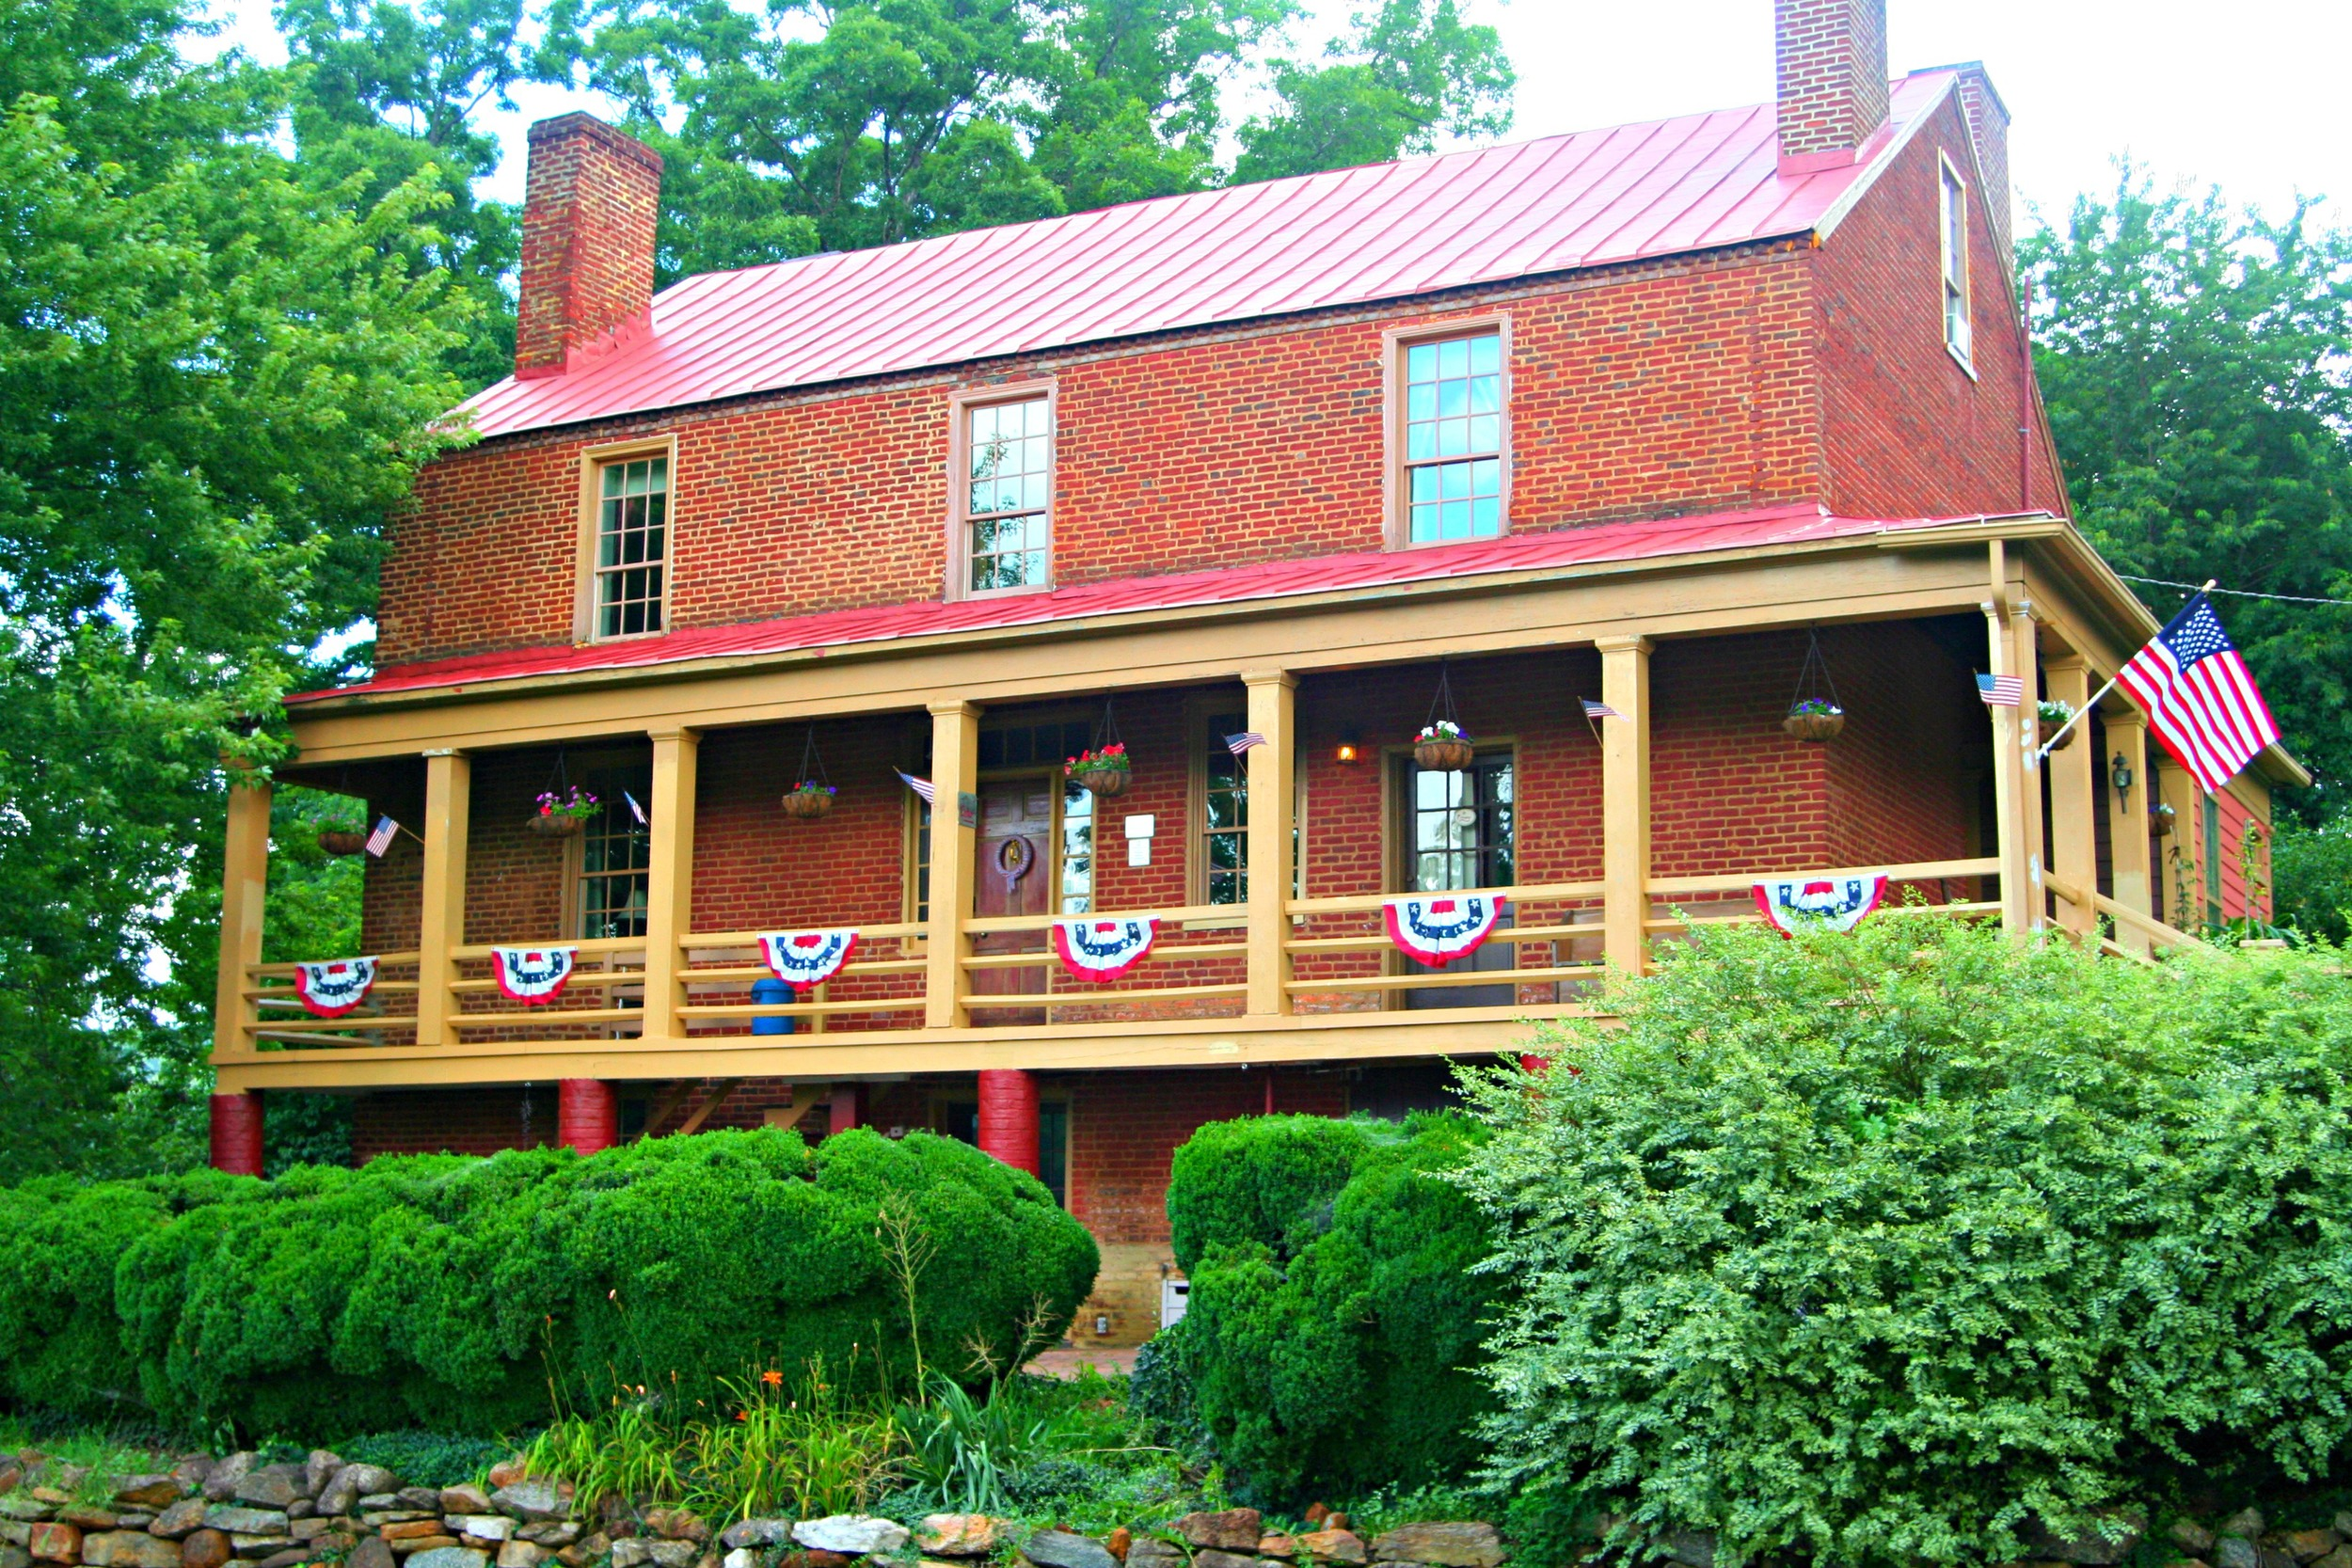 The Inn dressed up for the Fourth of July